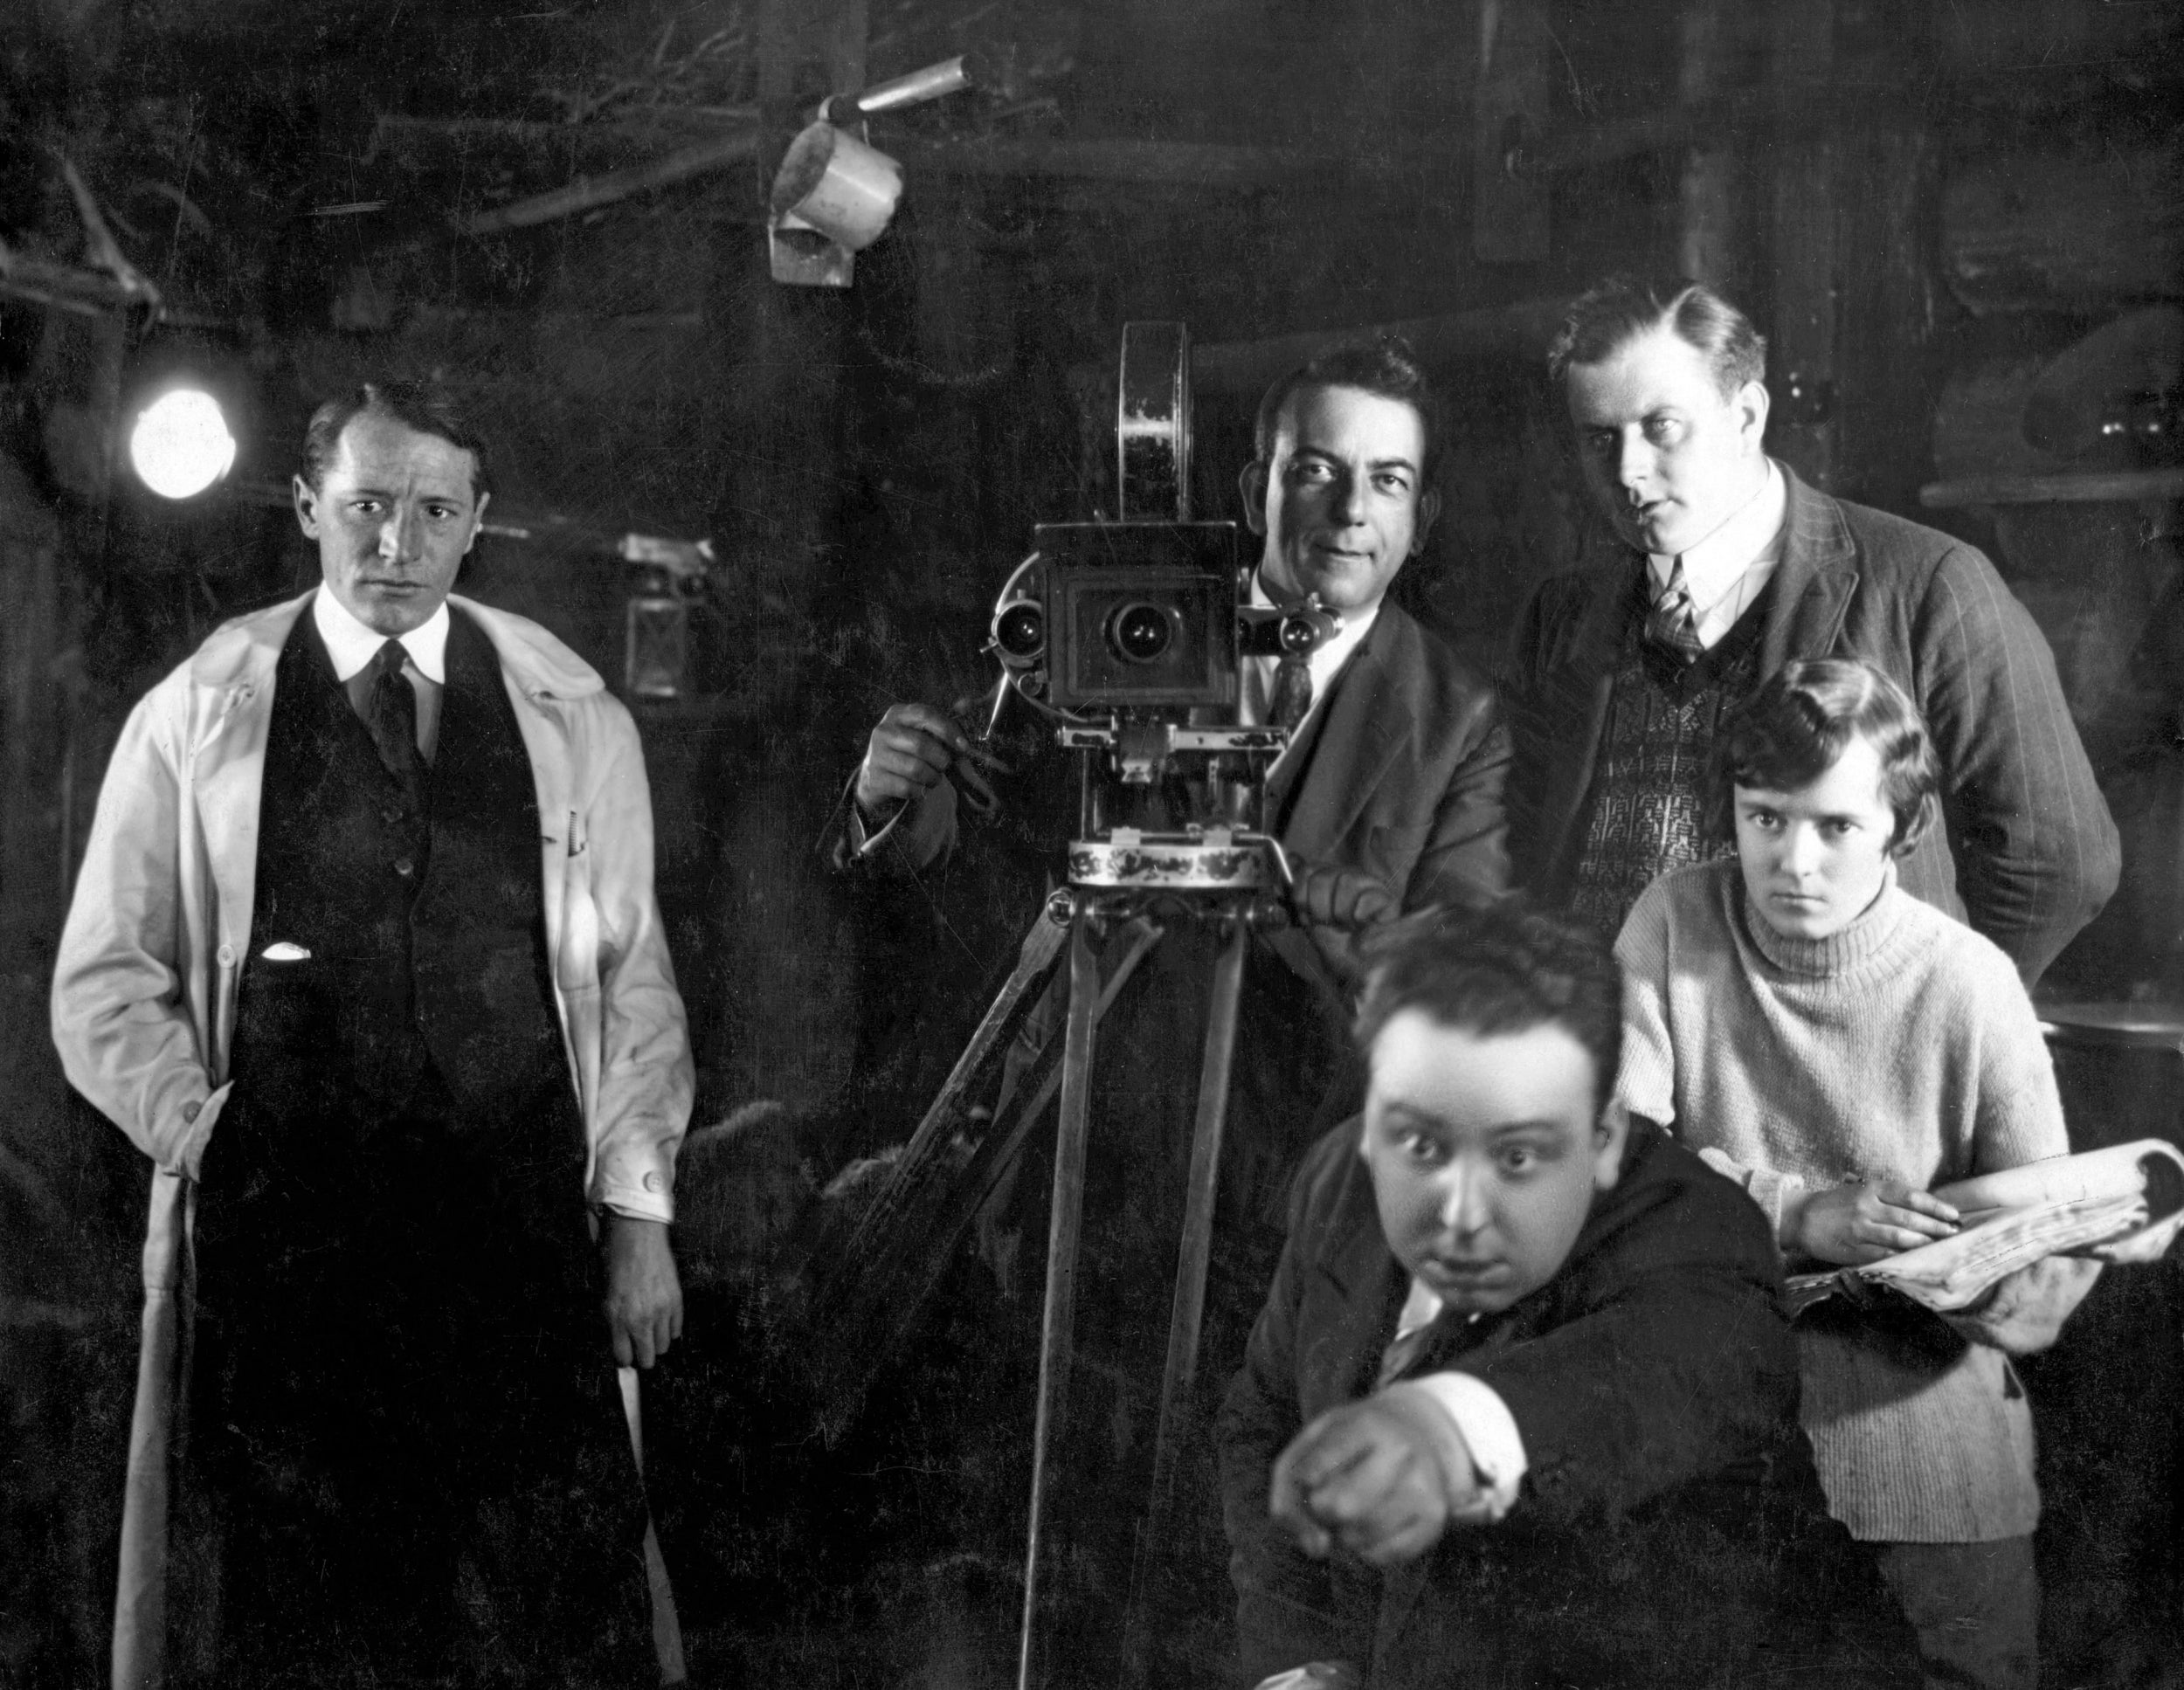 Alfred Hitchcock in photos: Behind the scenes of his most